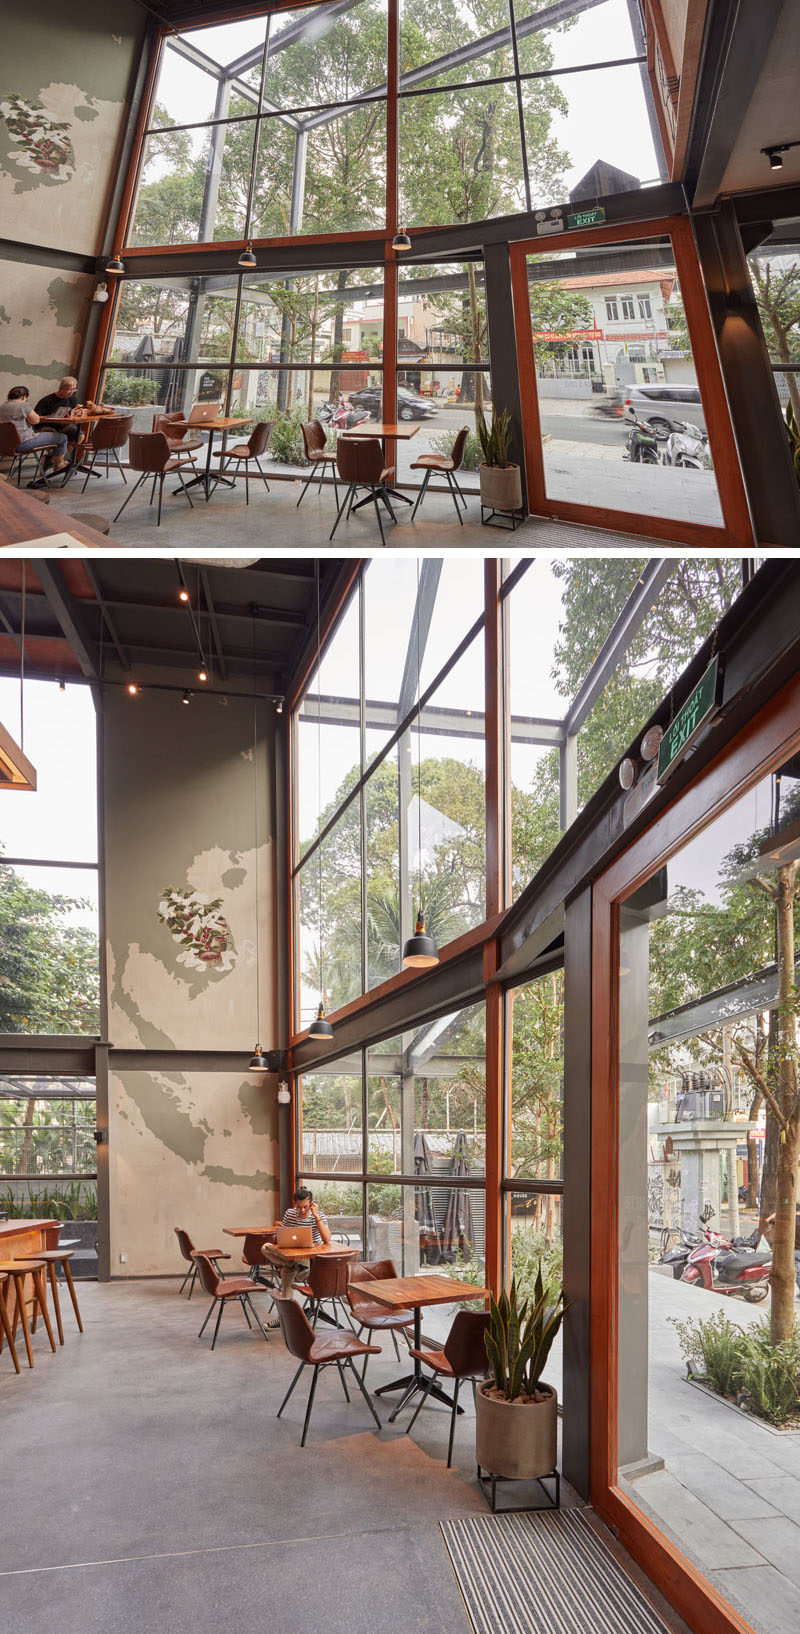 A large wall of windows floods the interior of this modern coffee shop with natural light and seating positioned next to the windows provides customers with street views. #CoffeeShop #Windows #Architecture